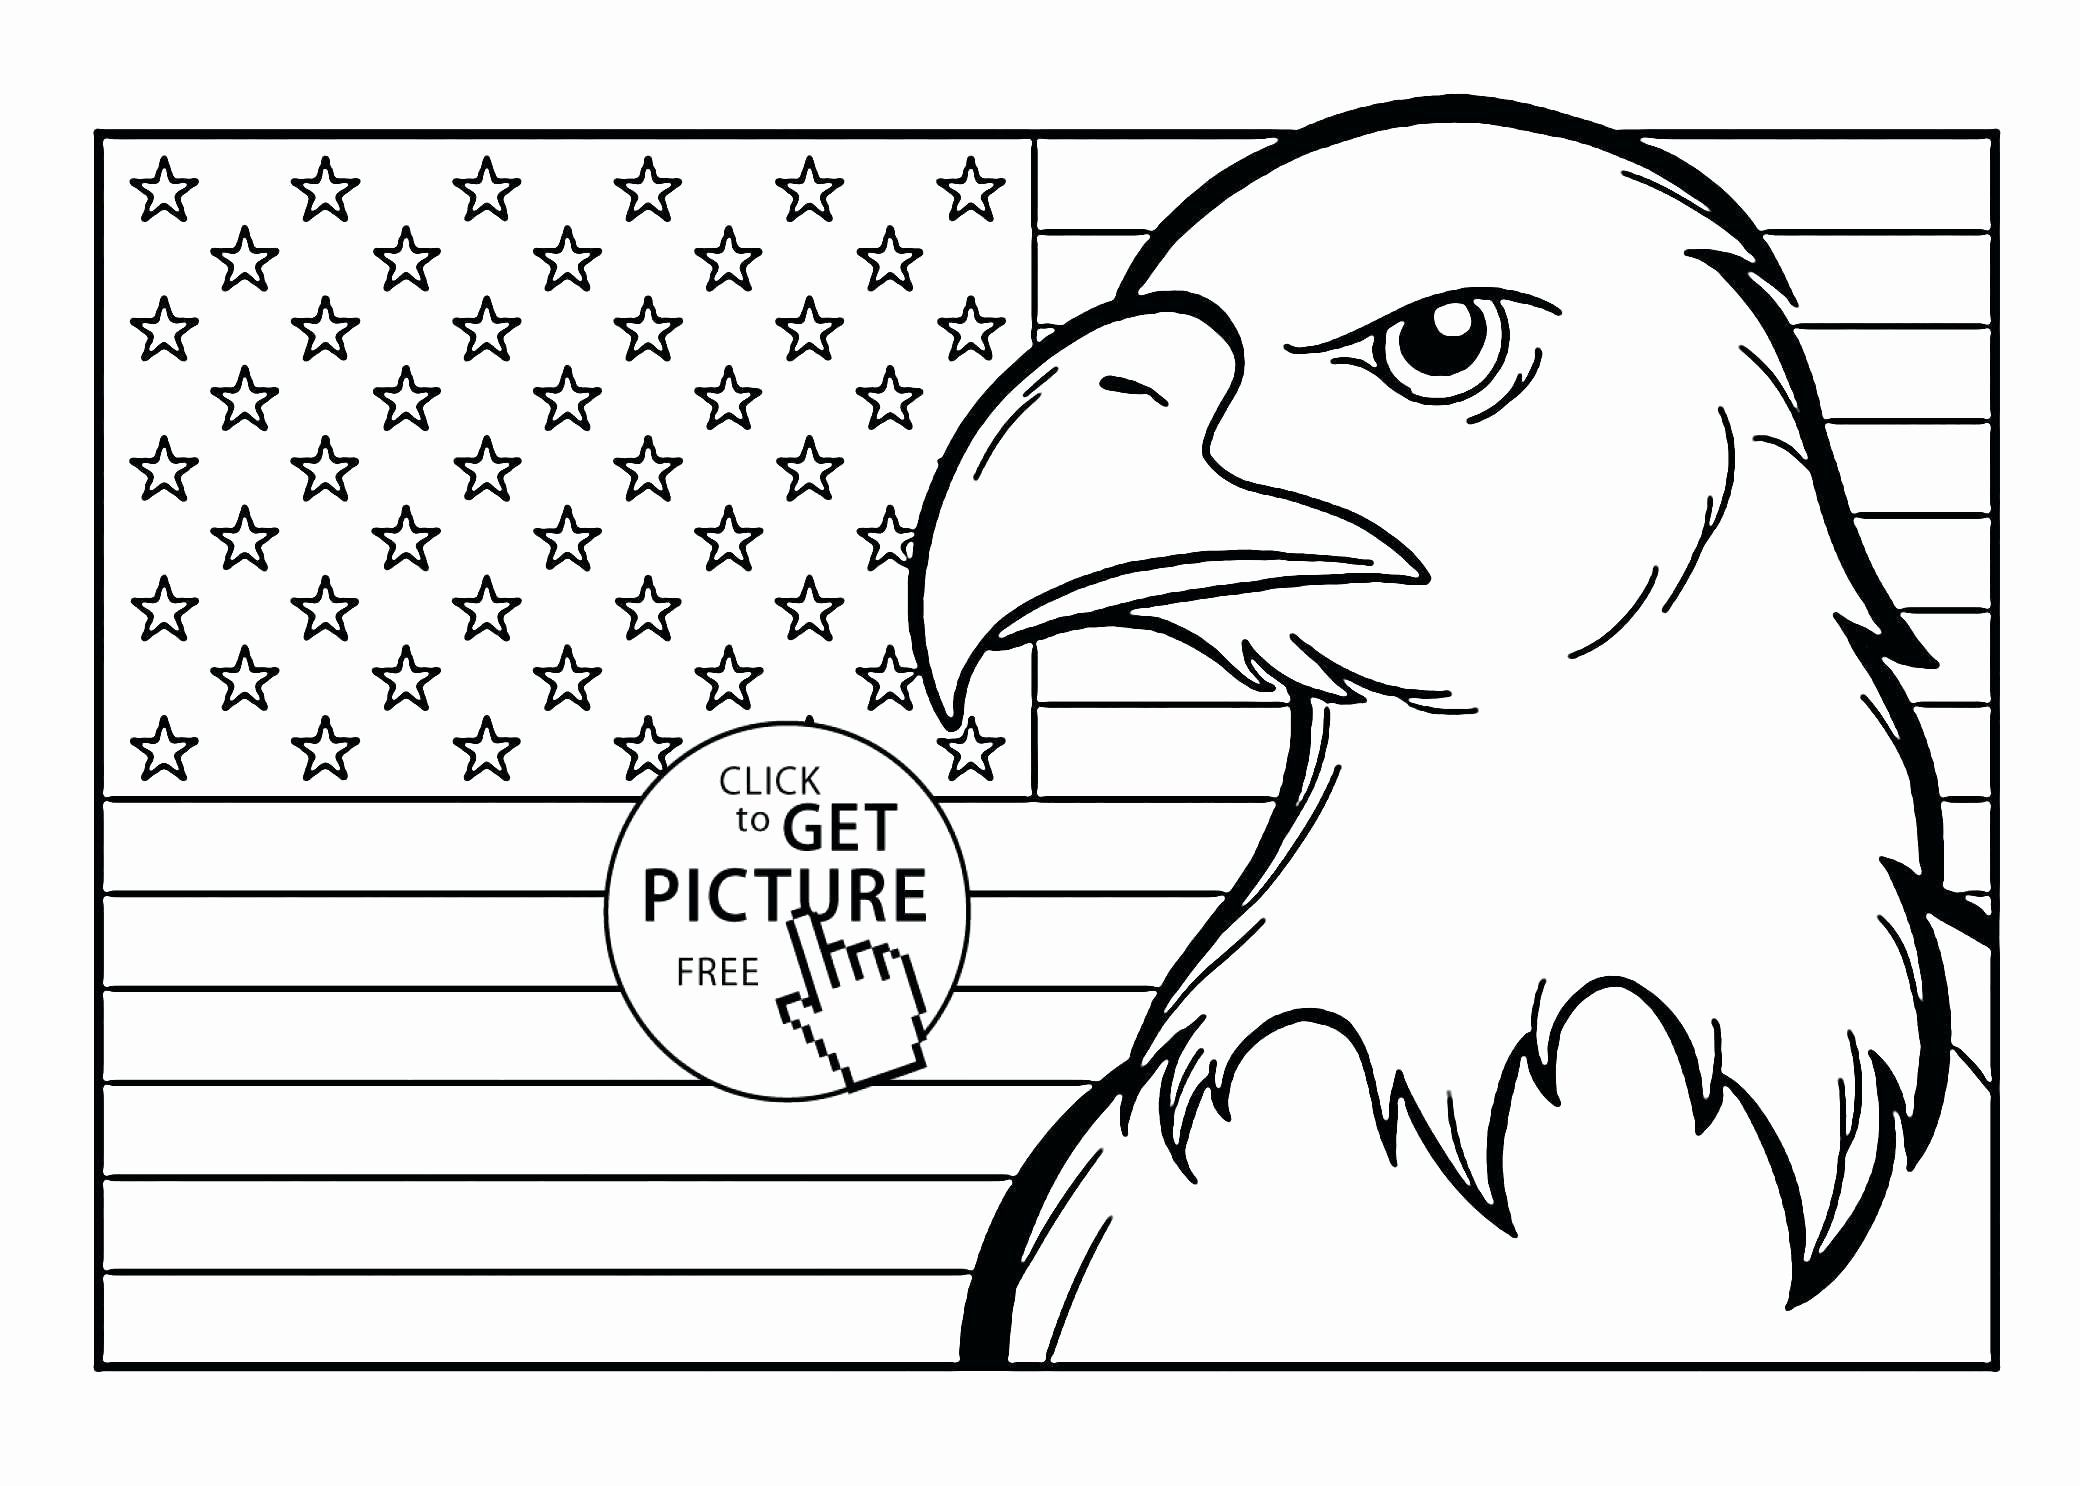 Coloring Pictures Of American Flags New Coloring Pic Of American